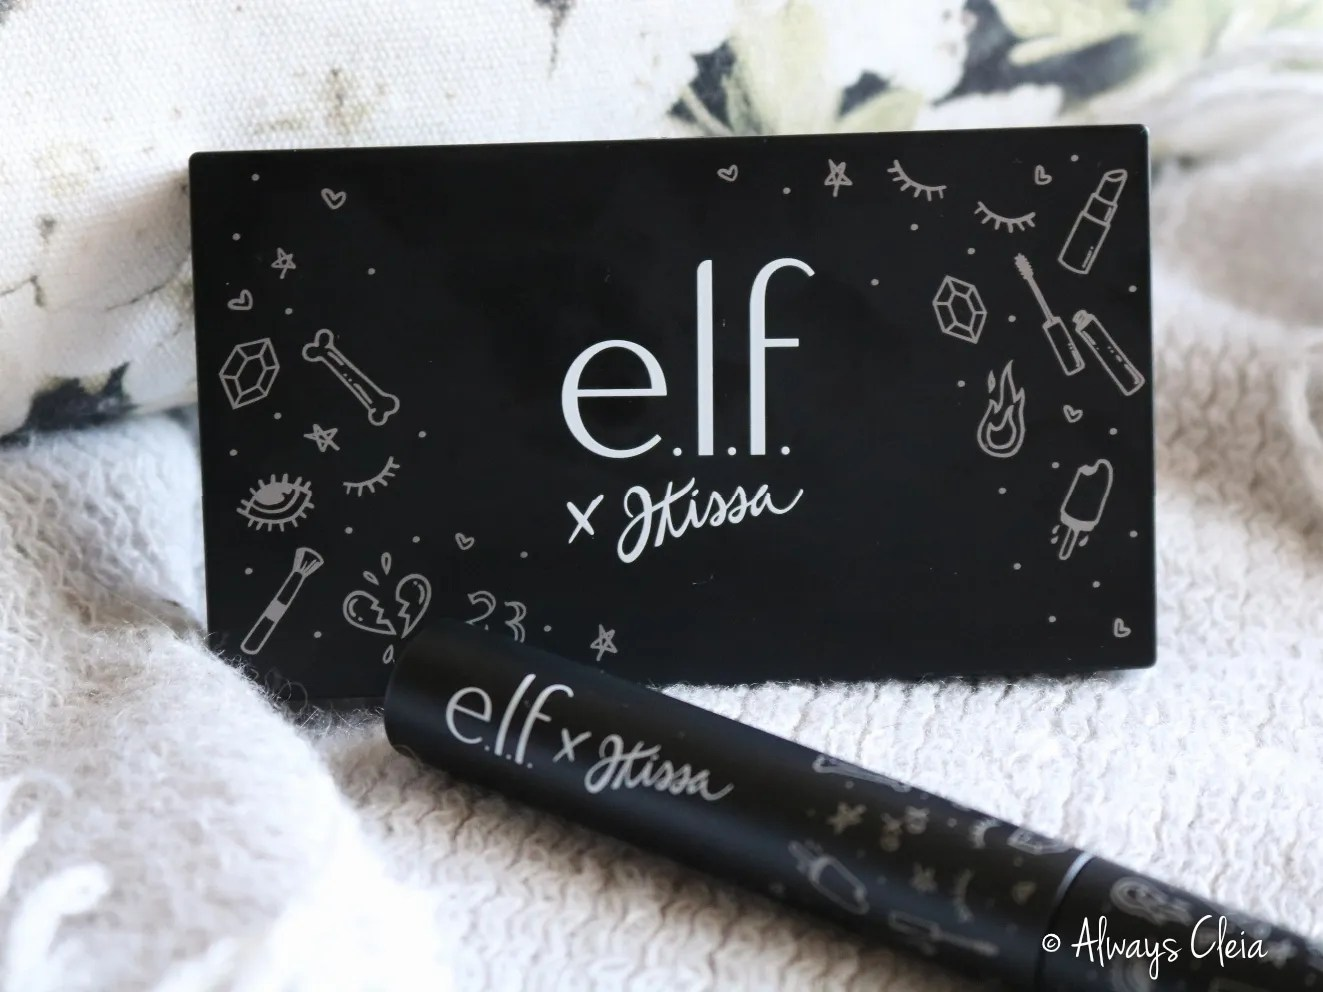 elf JKISSA Palette & Mascara Review